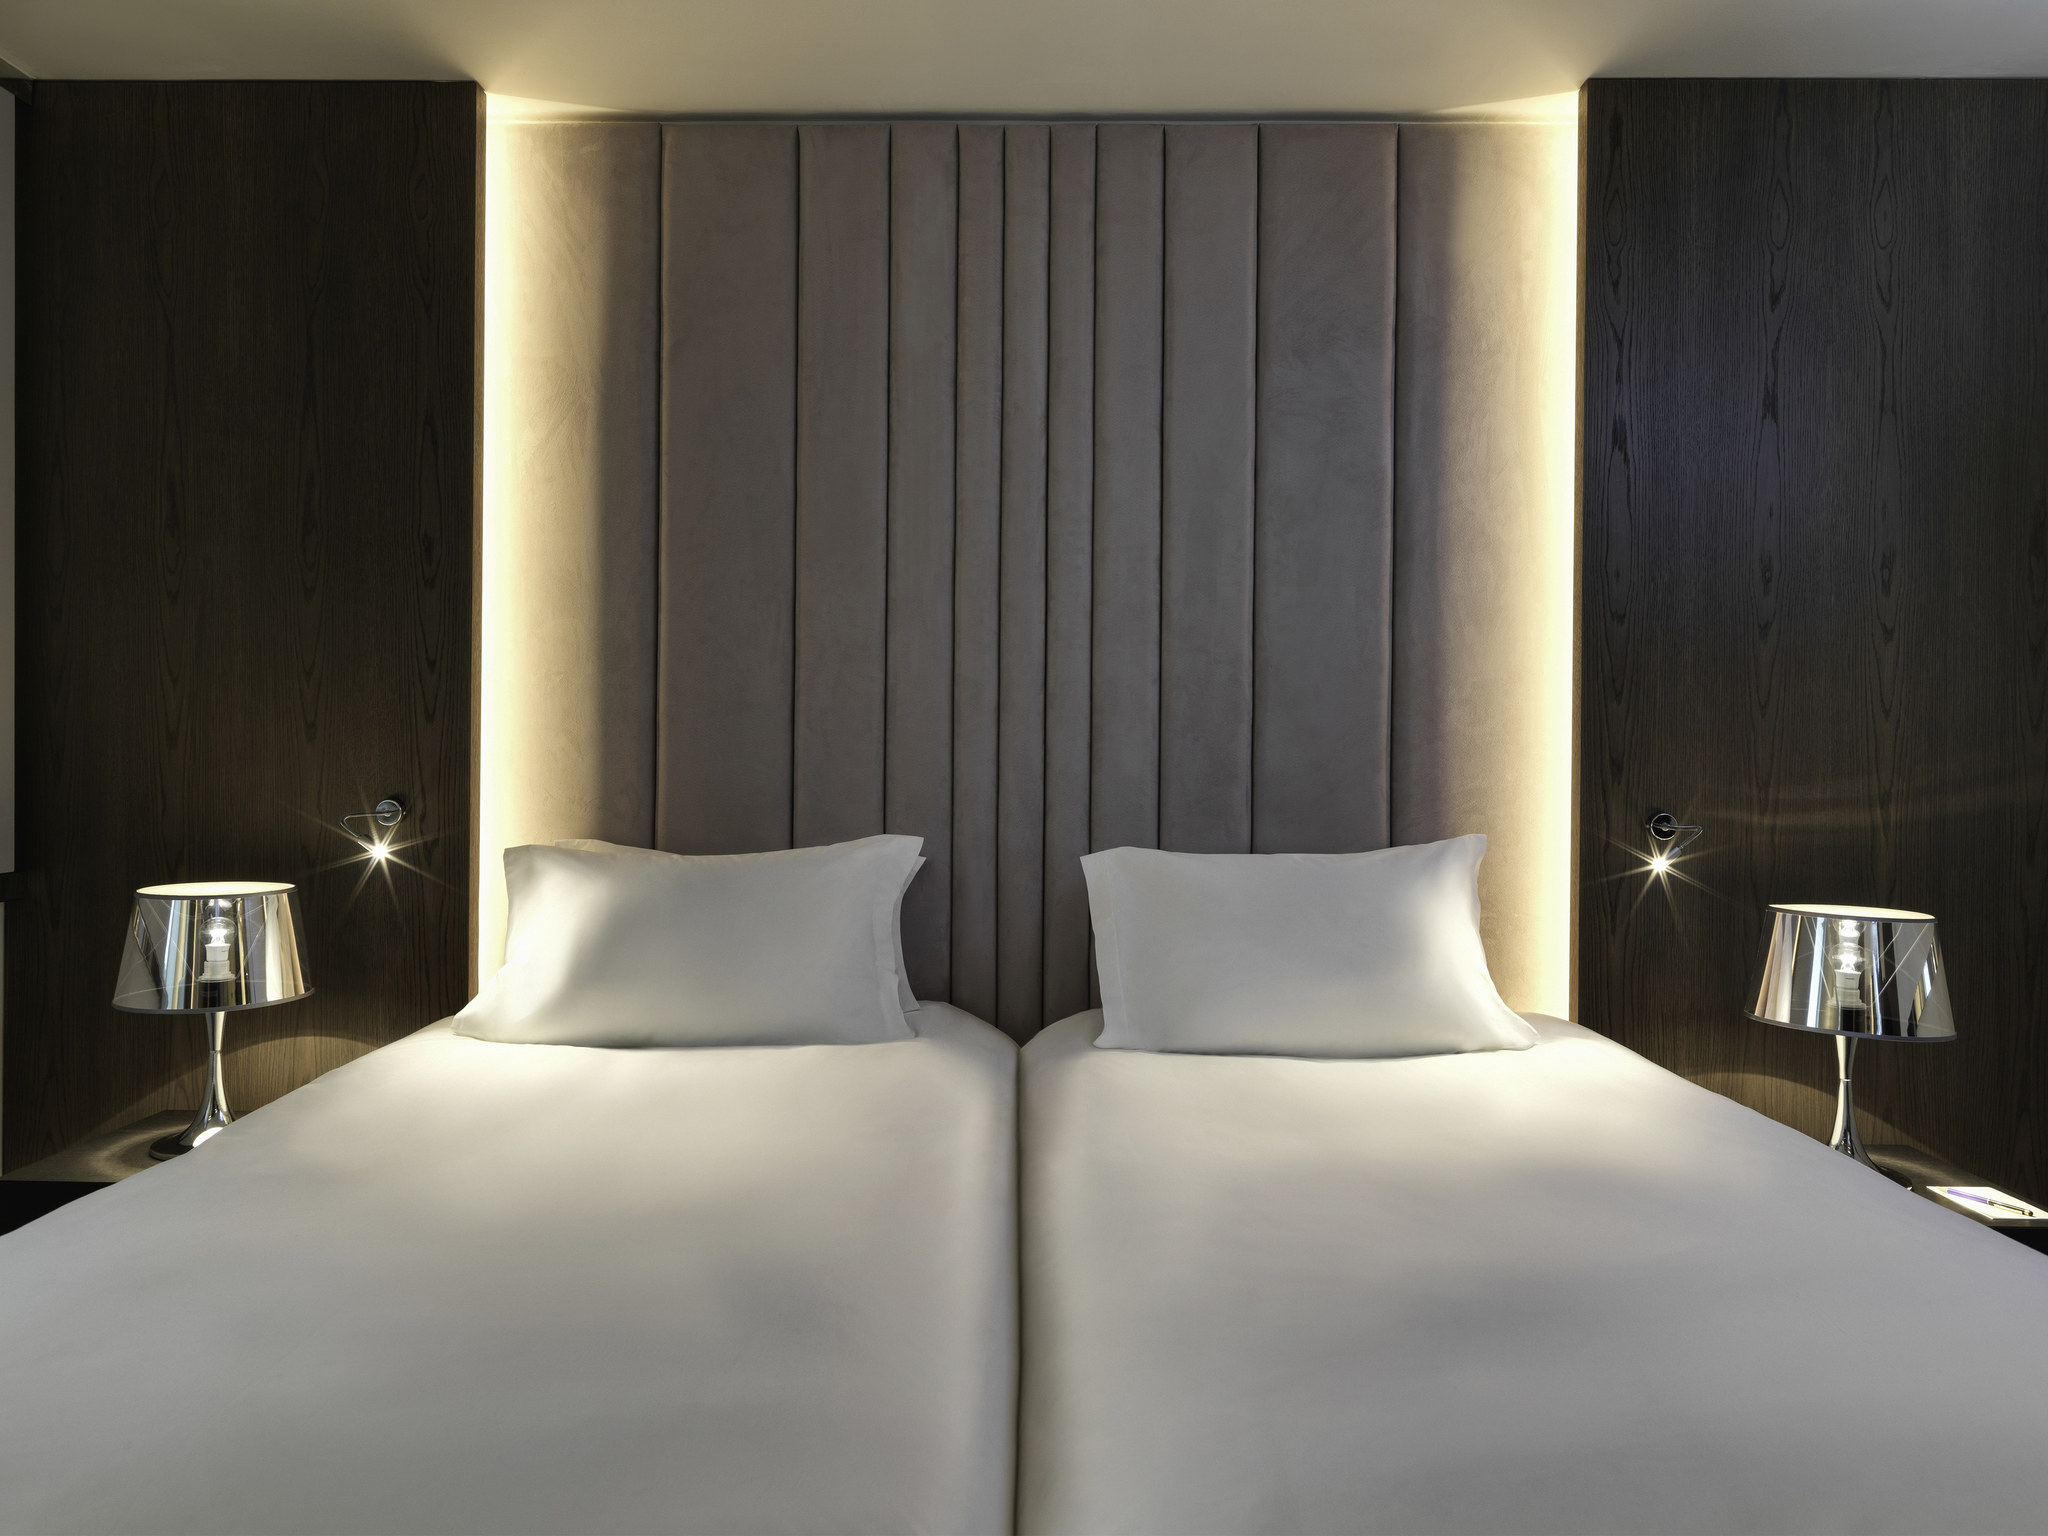 Sofitel athens airport luxury hotel in athens accorhotels for Beds for 13 year olds